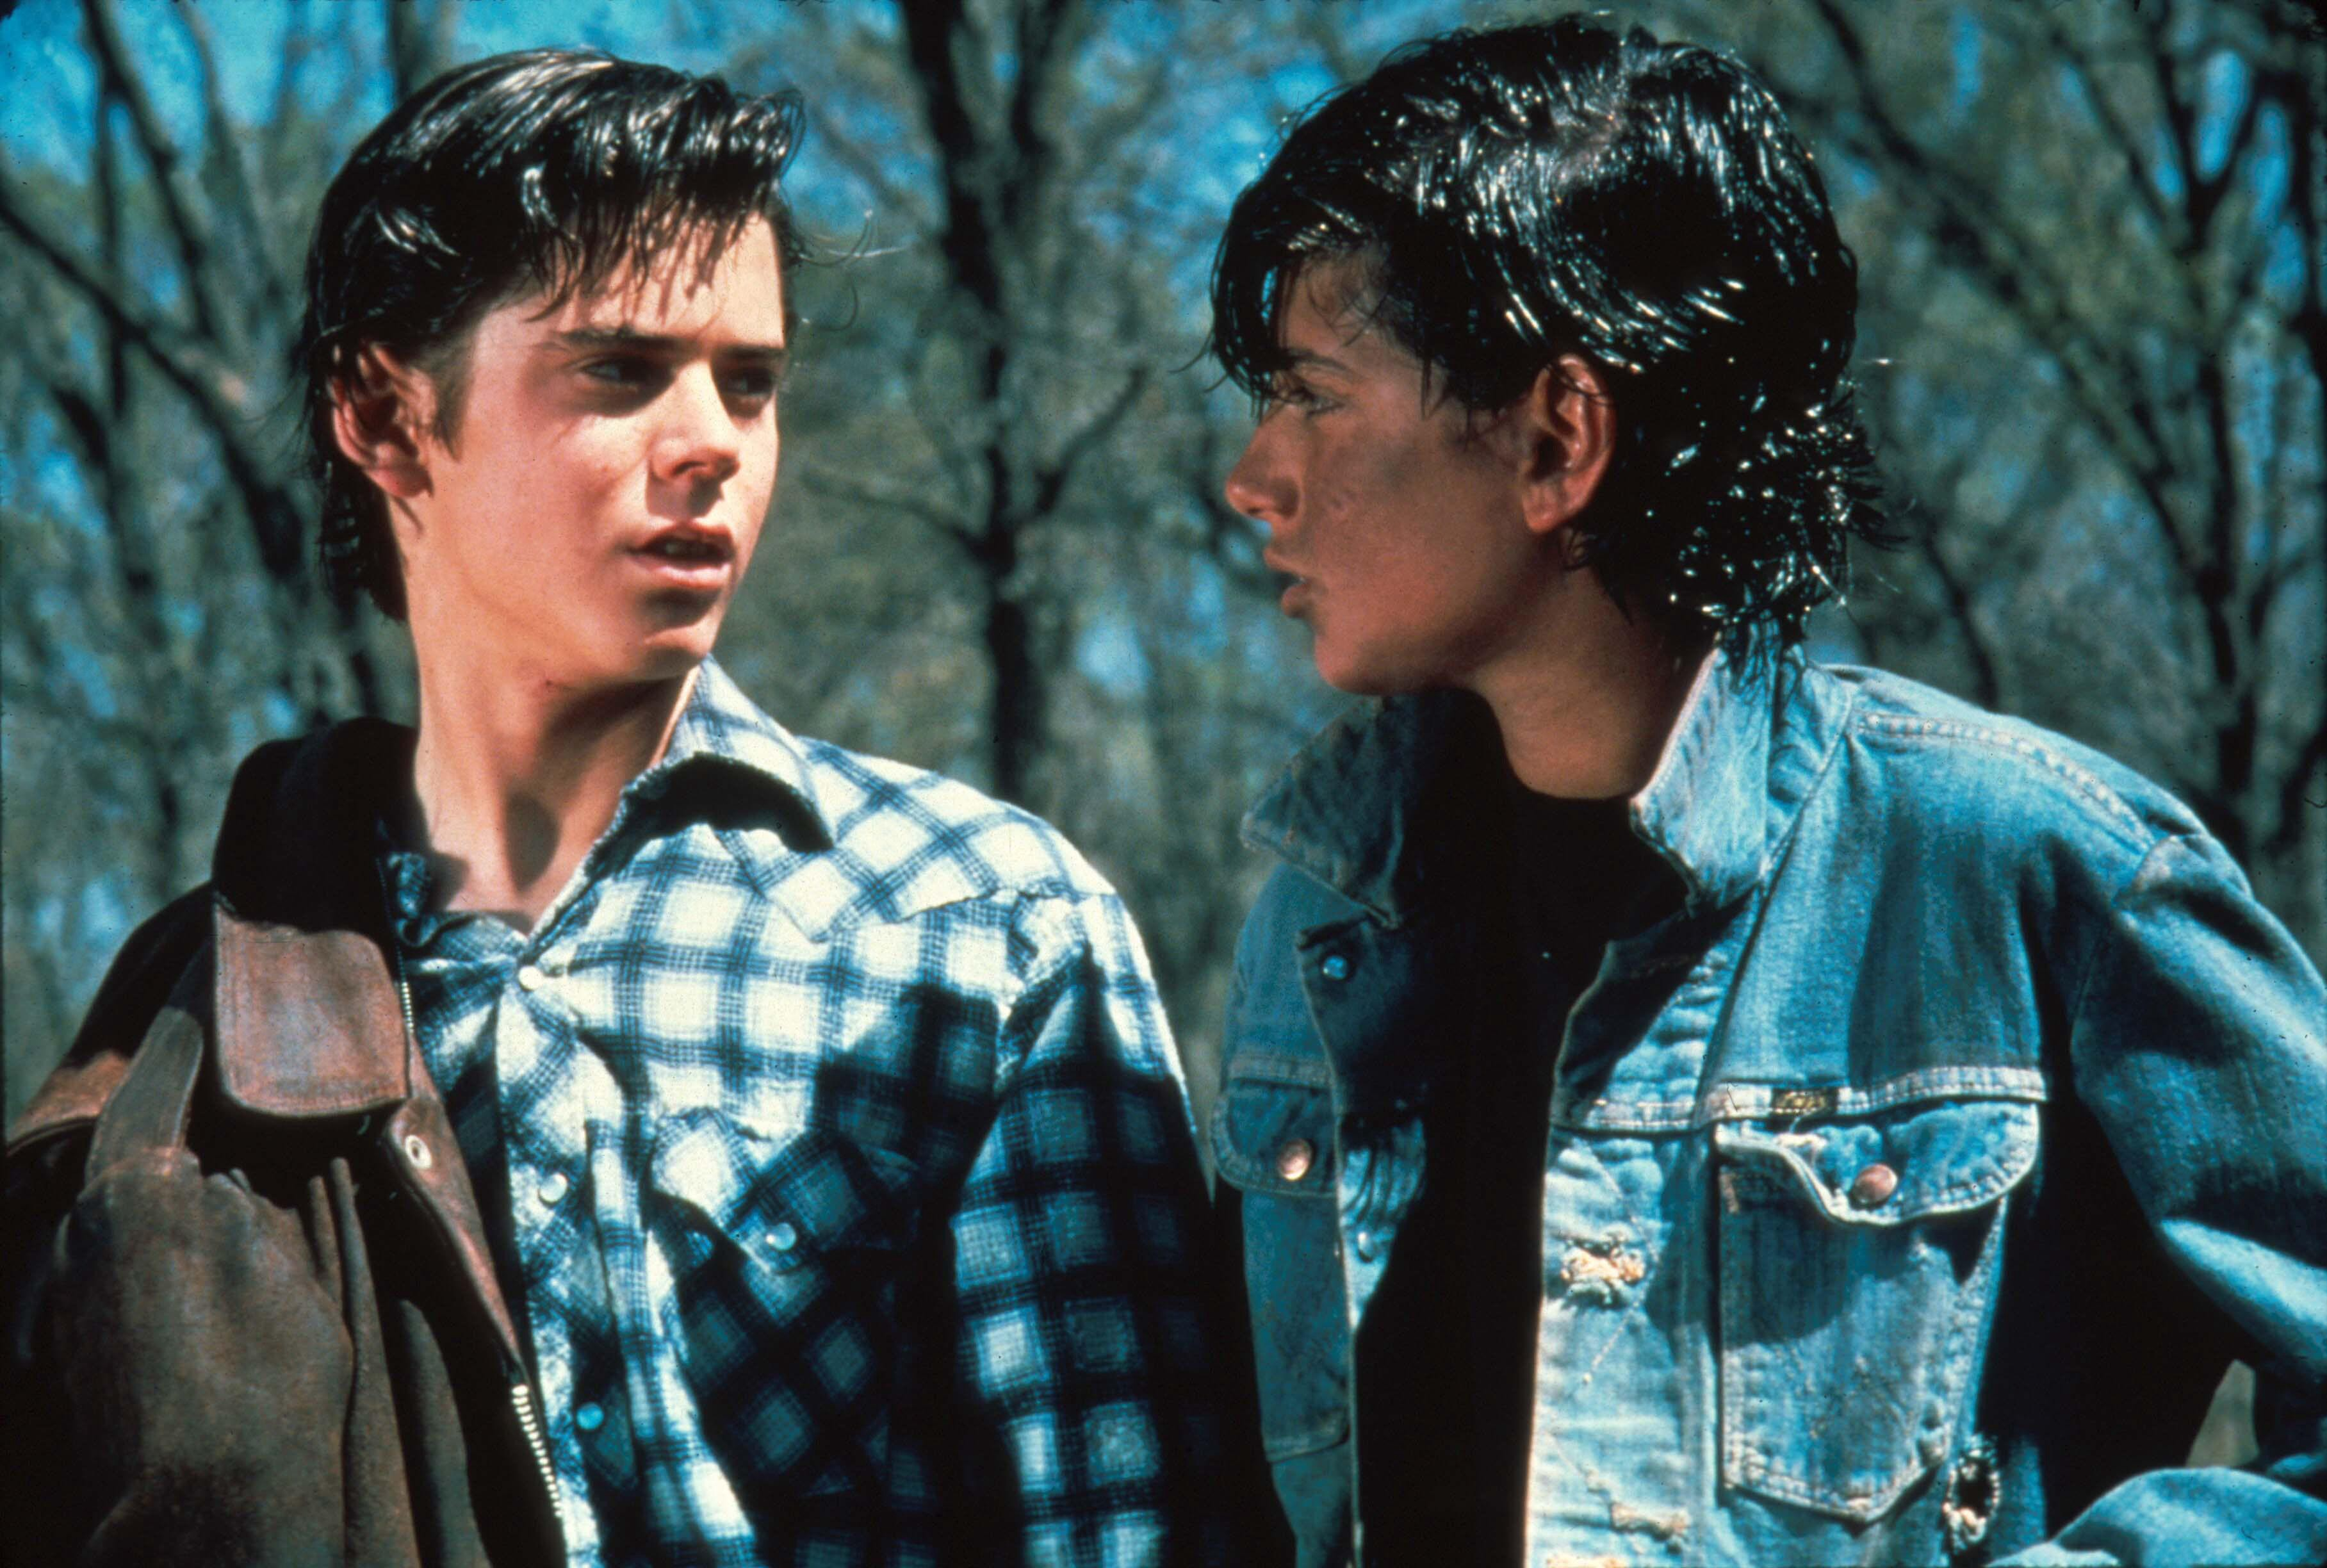 Stay Gold What We Can Learn From Johnny Cade And The Outsiders By Chris Clews Medium Asked by hailey b #568942 on 10/26/2016 4:12 pm. johnny cade and the outsiders